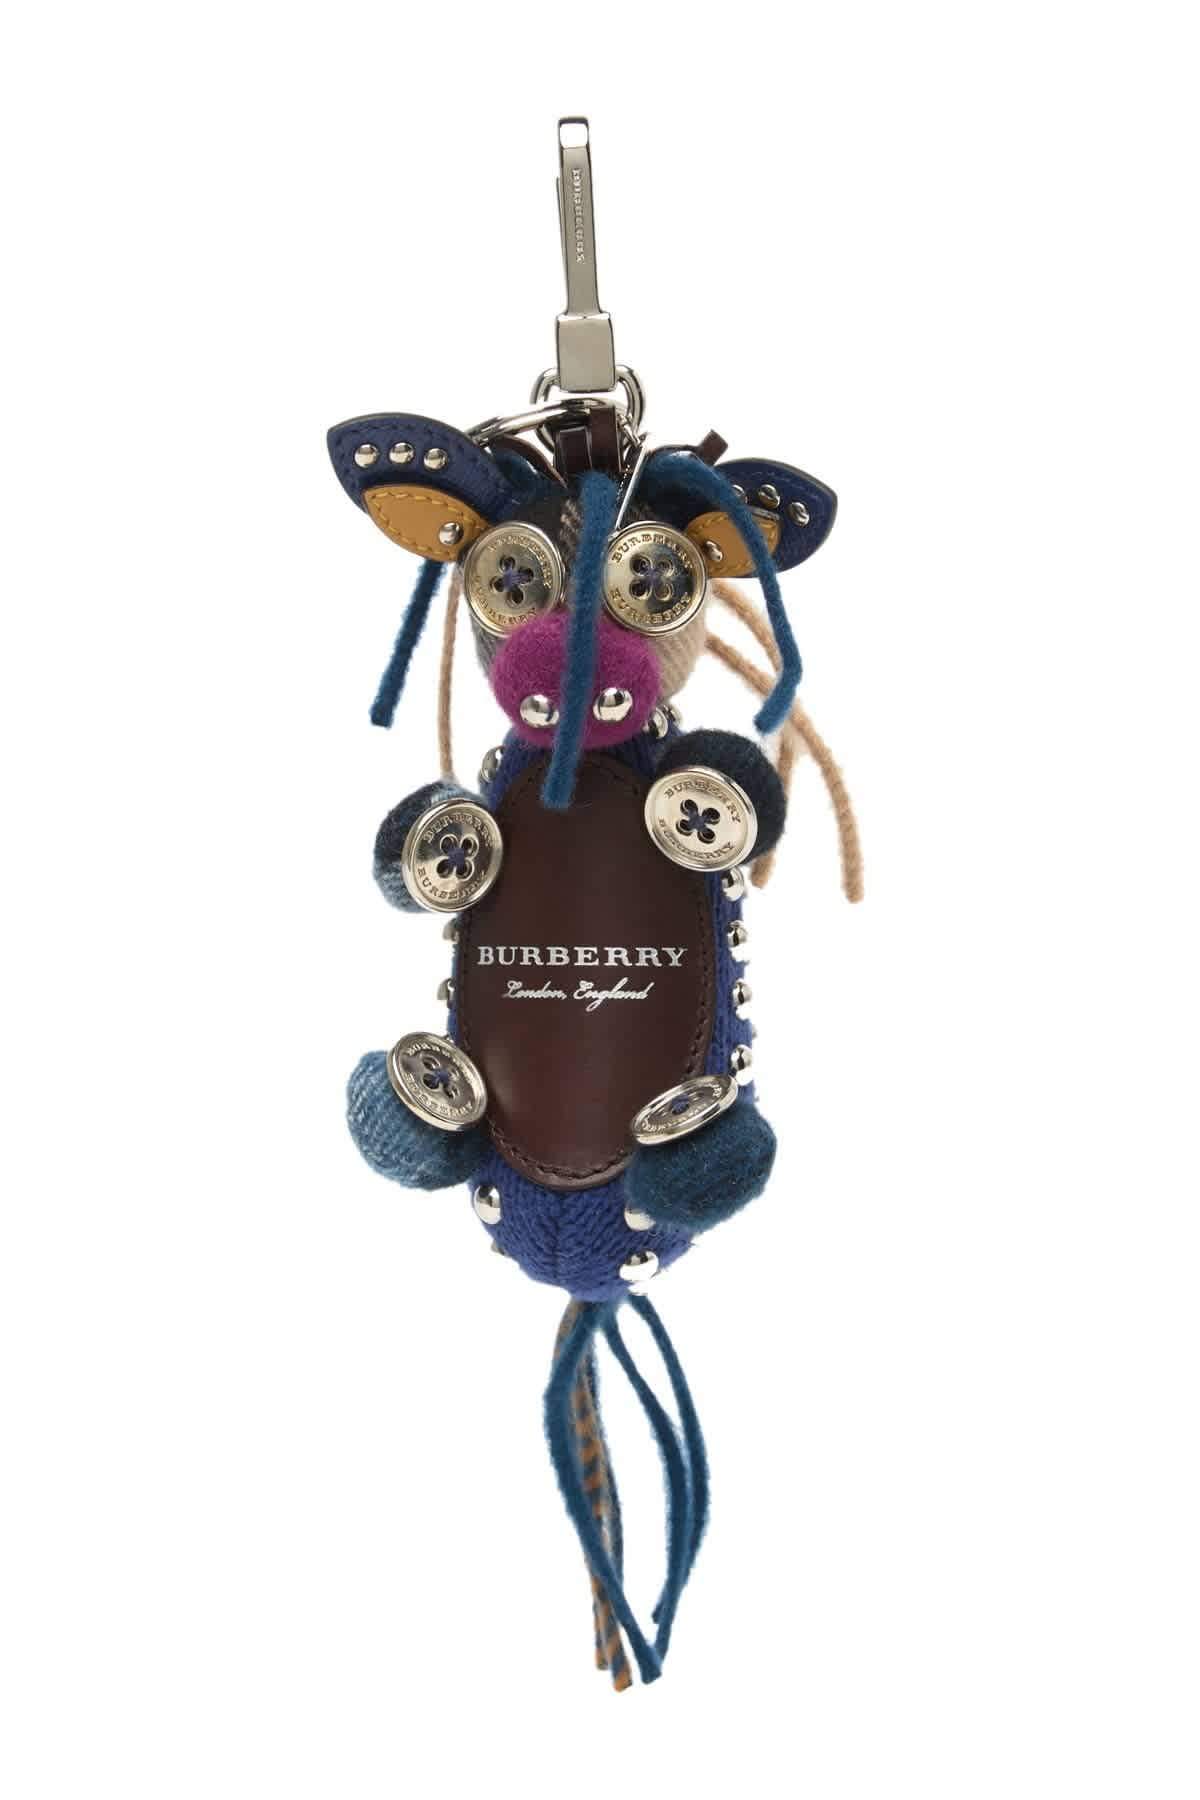 Burberry Mable Donkey Key Charm In Blue